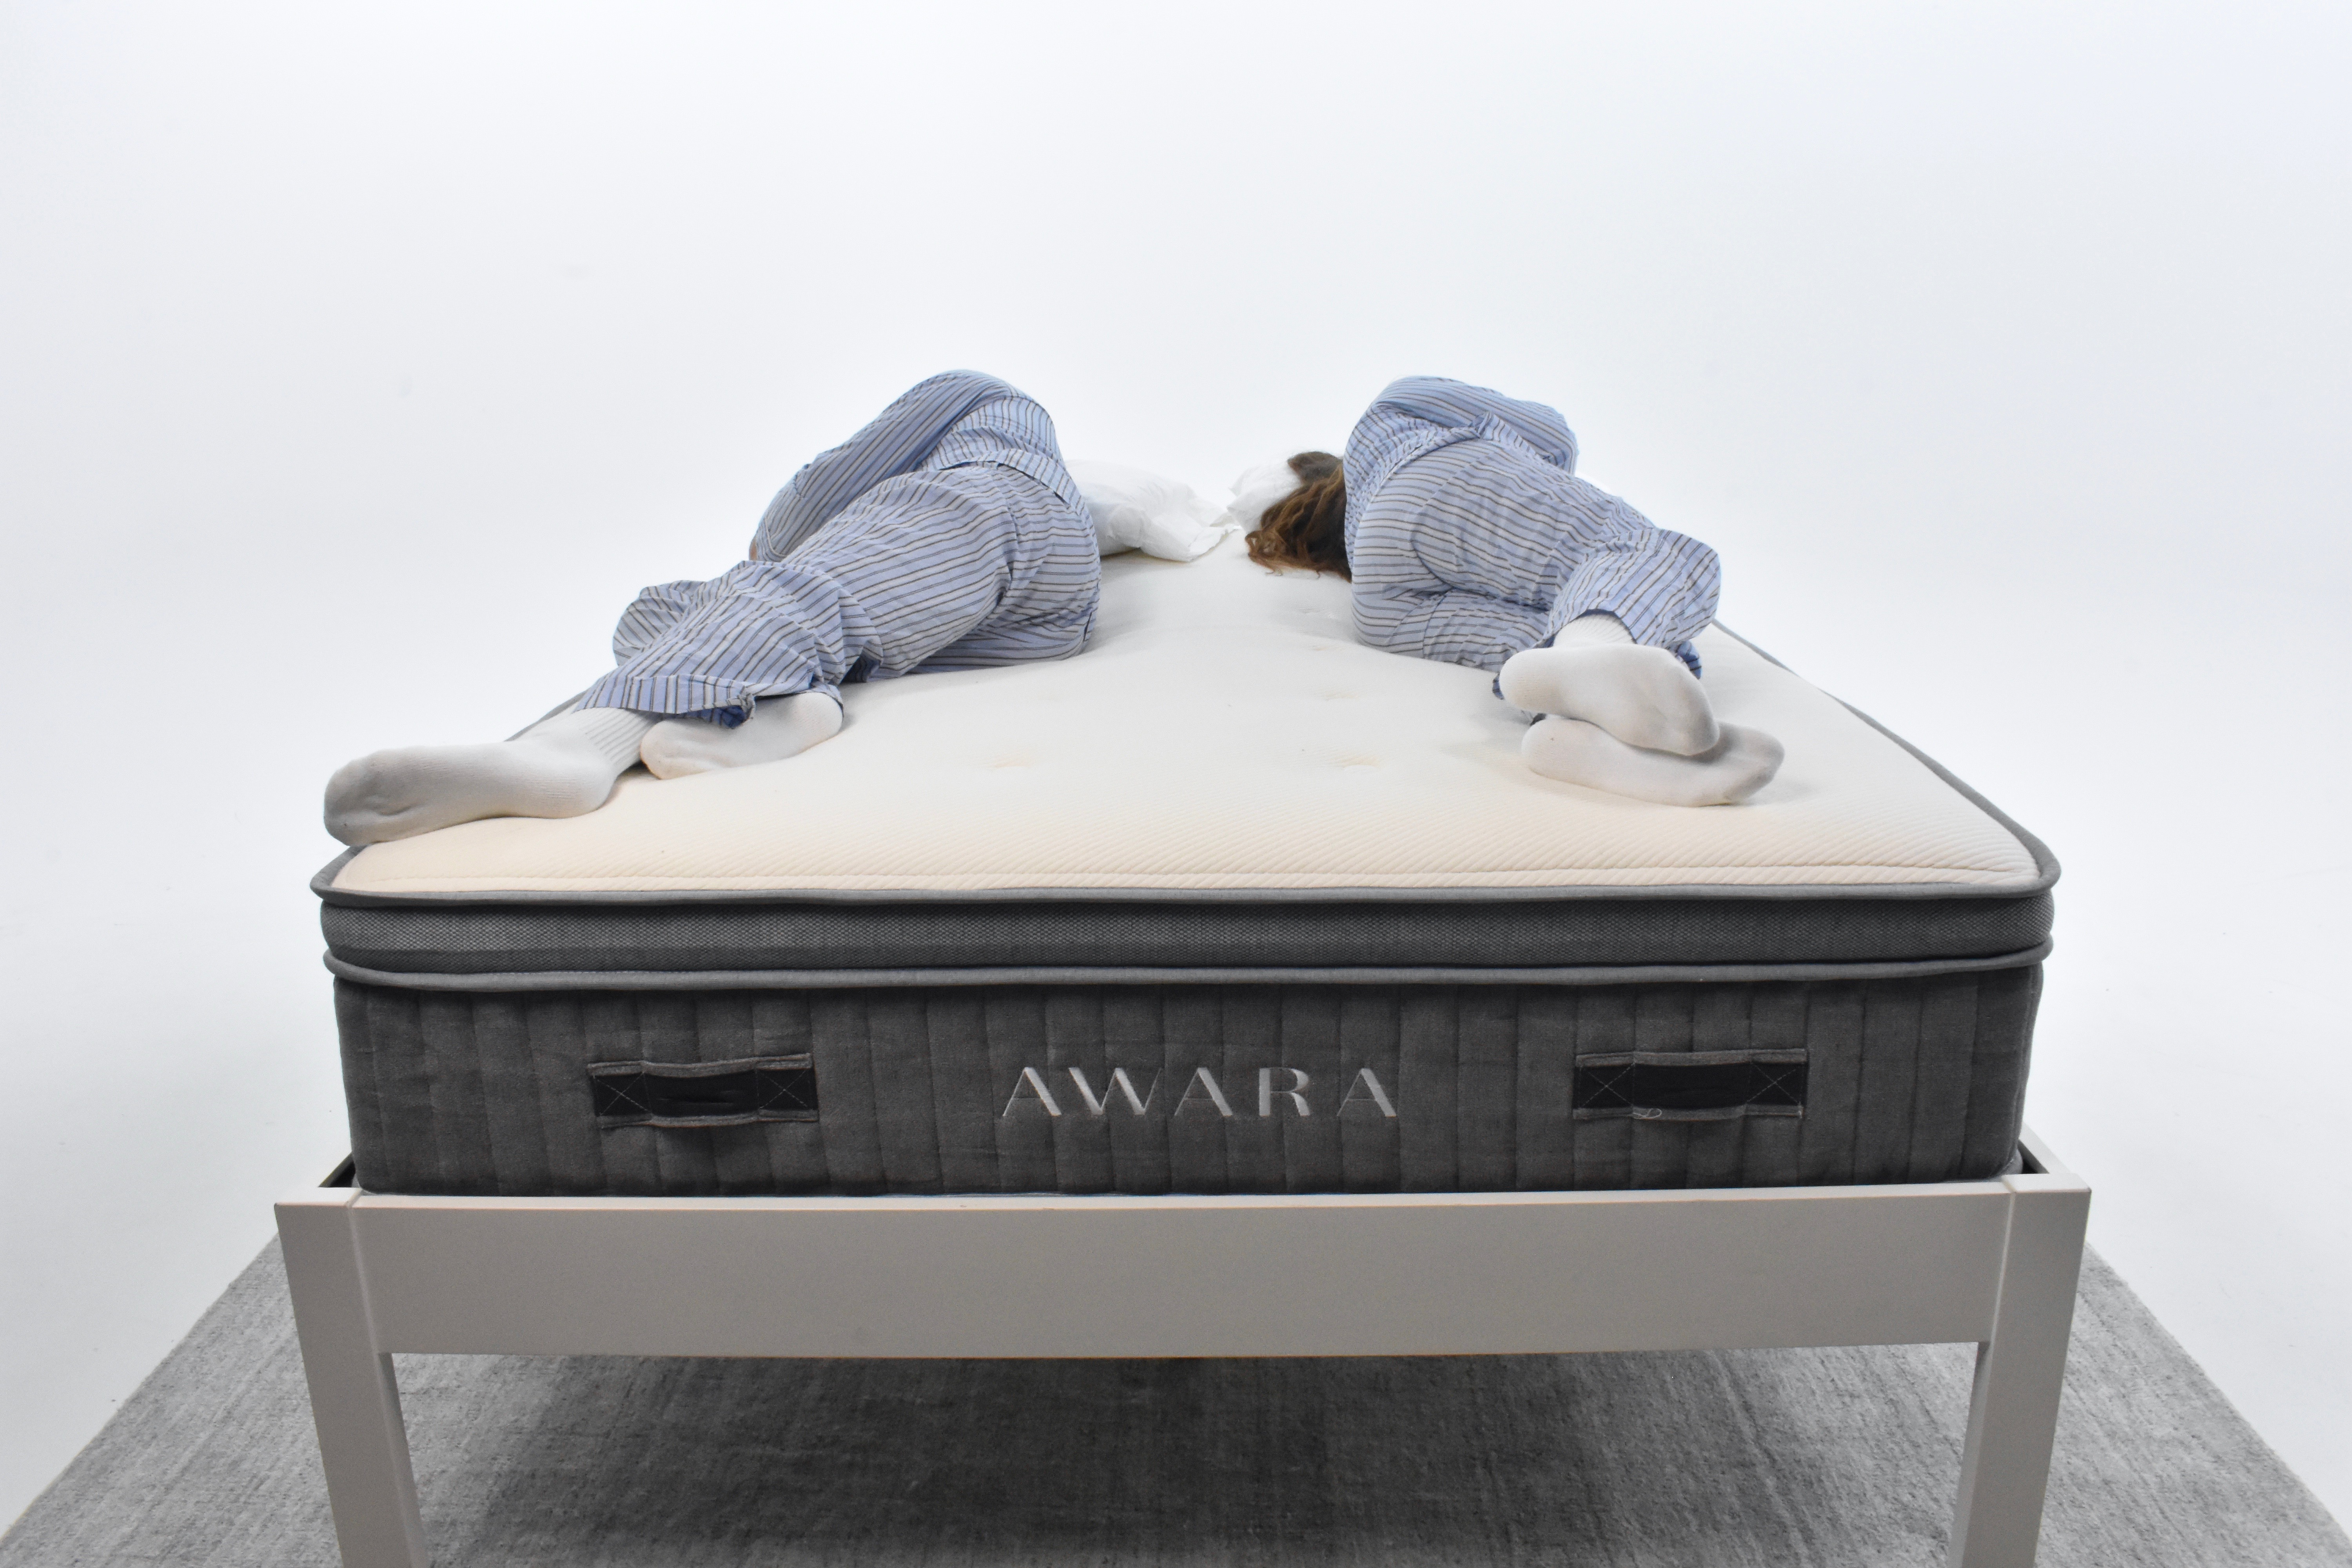 Man and woman laying on the Awara testing the responsiveness of the mattress